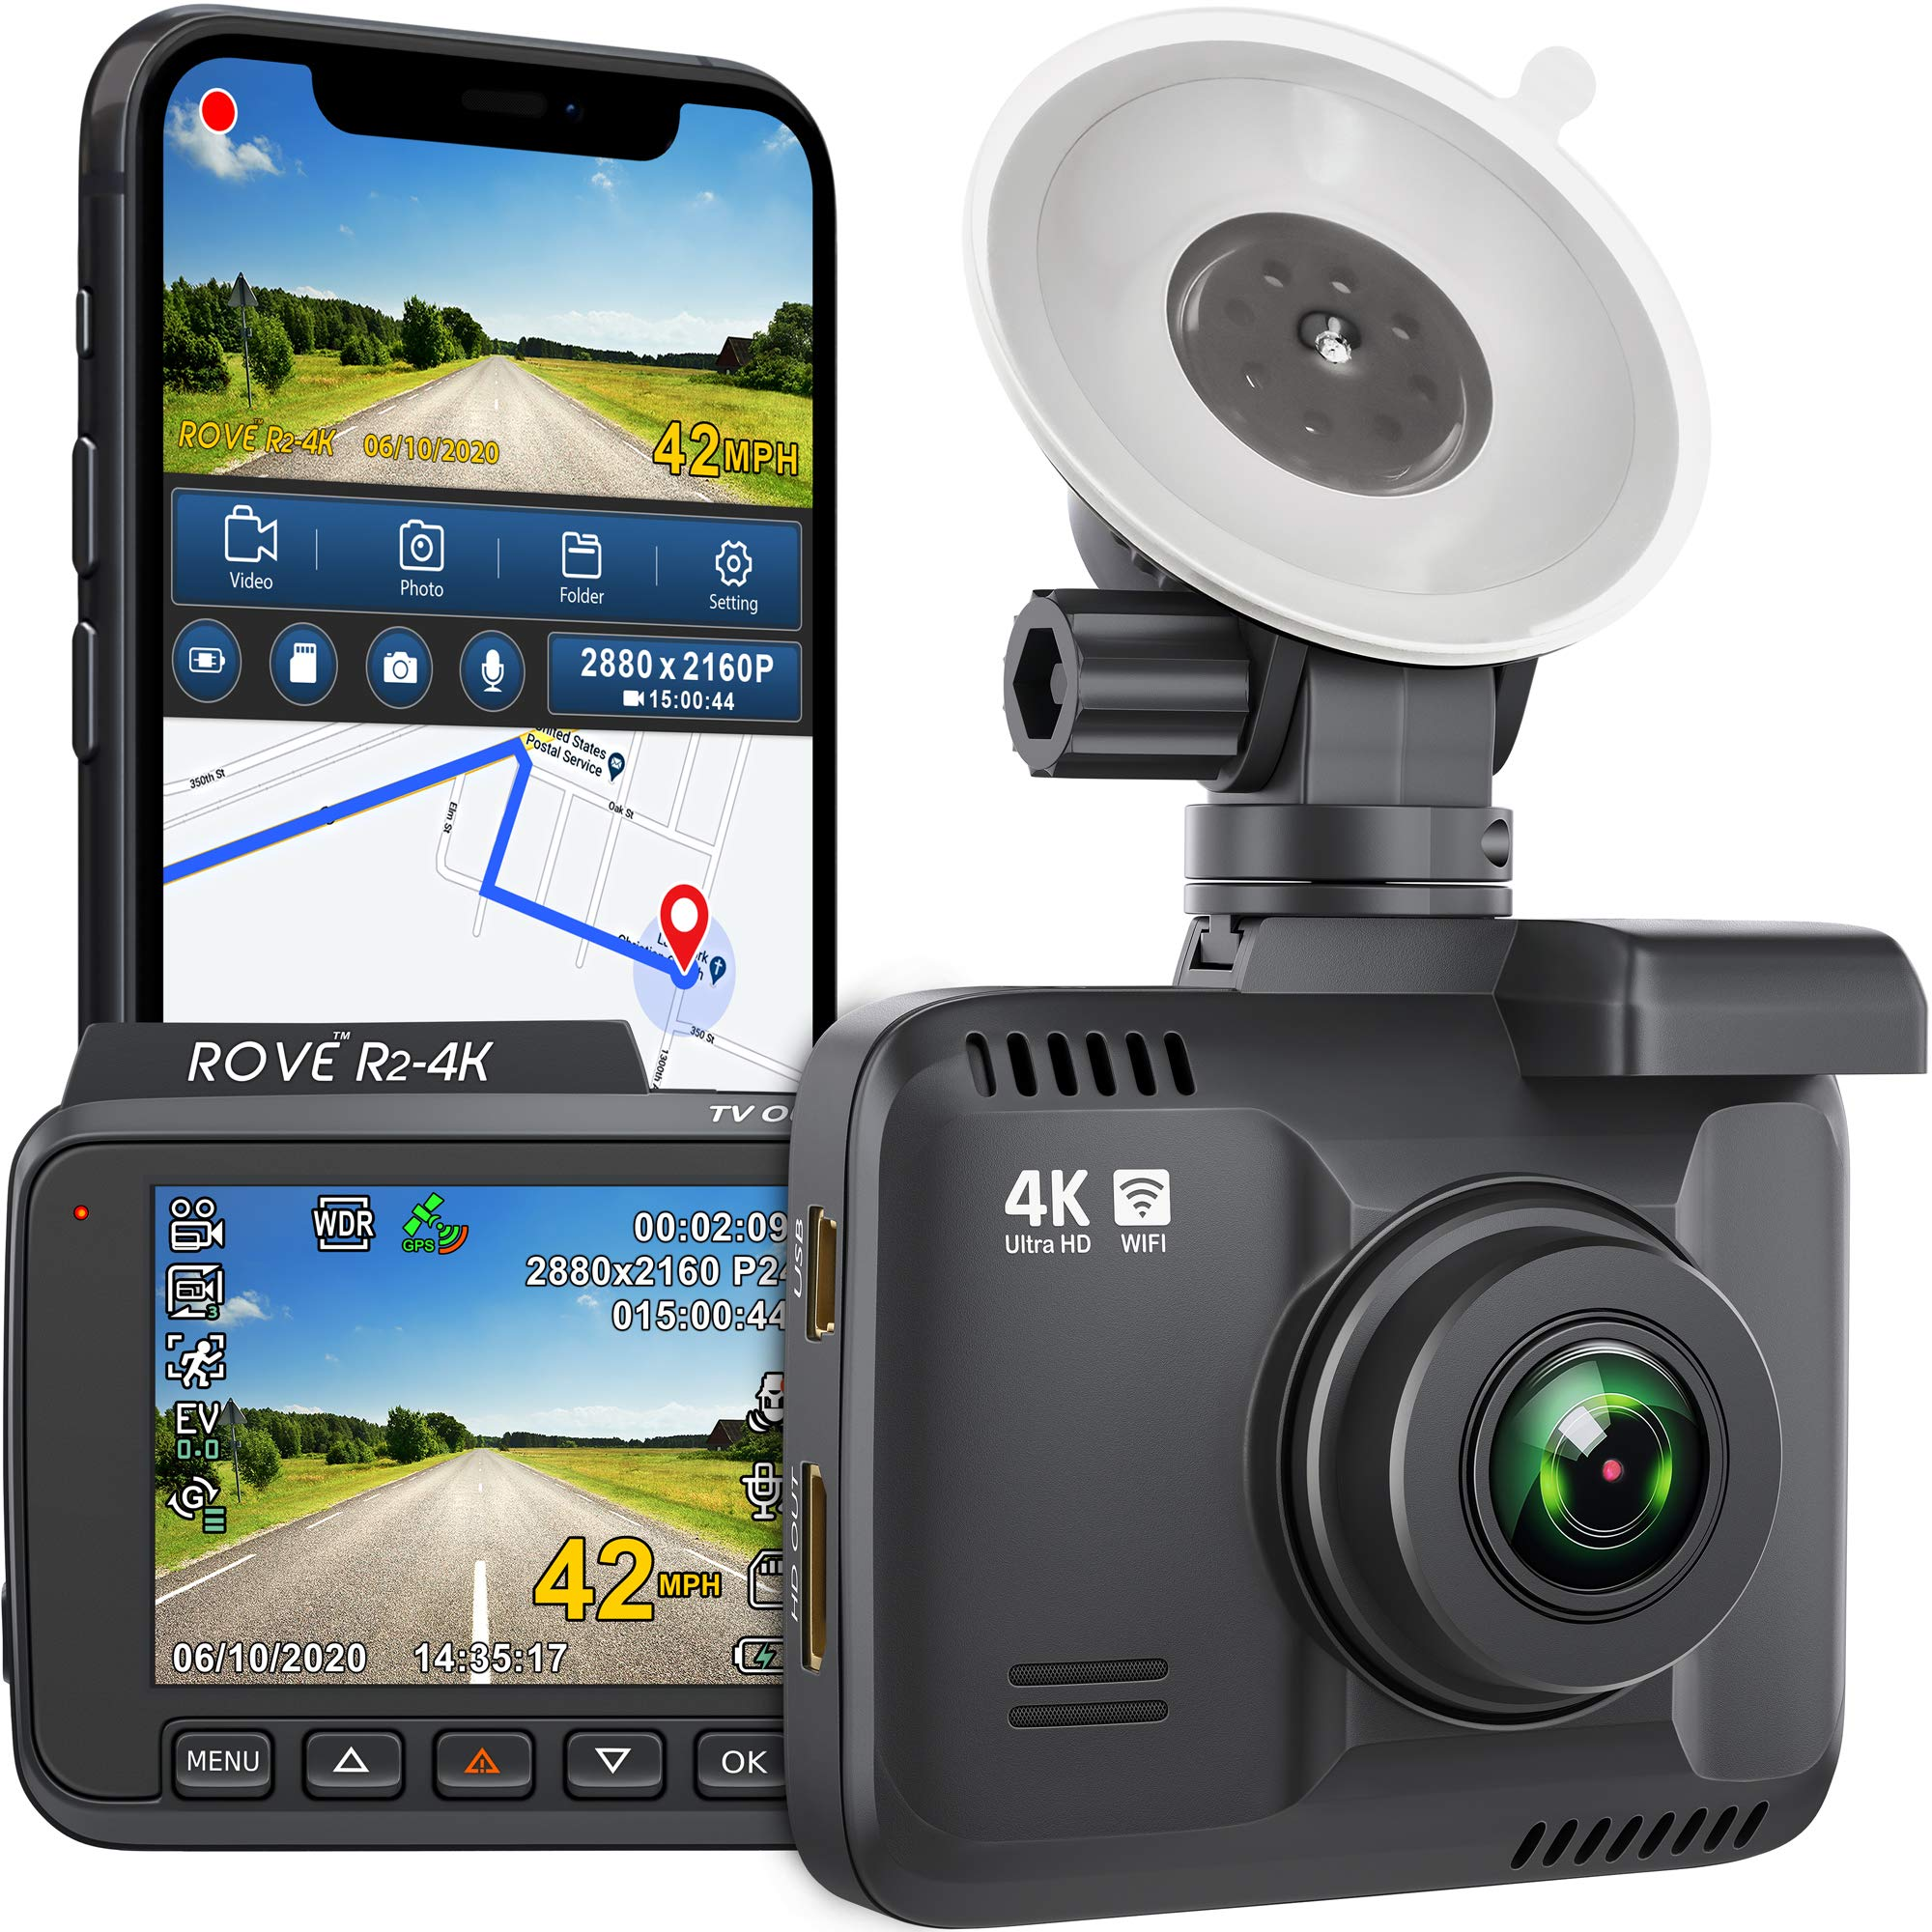 "Rove R2- 4K Dash Cam Built in WiFi GPS Car Dashboard Camera Recorder with UHD 2160P, 2.4"" LCD, 150° Wide Angle, WDR, Night Vision"